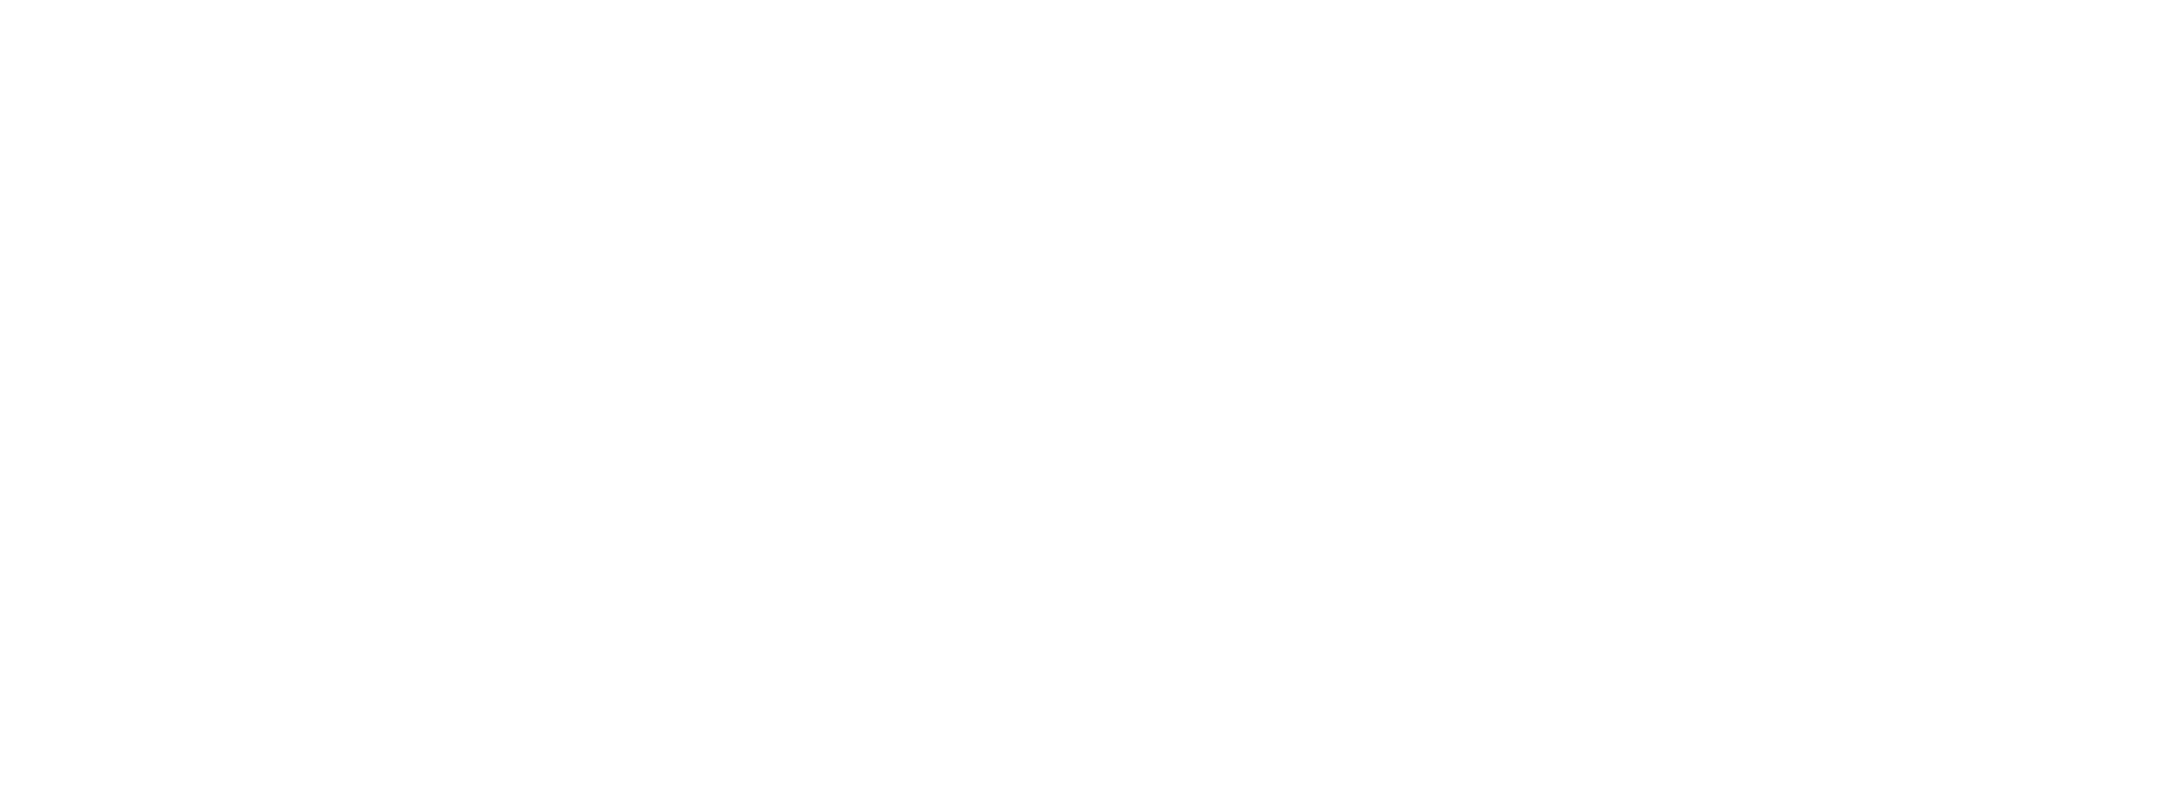 votacall-white-logo.png